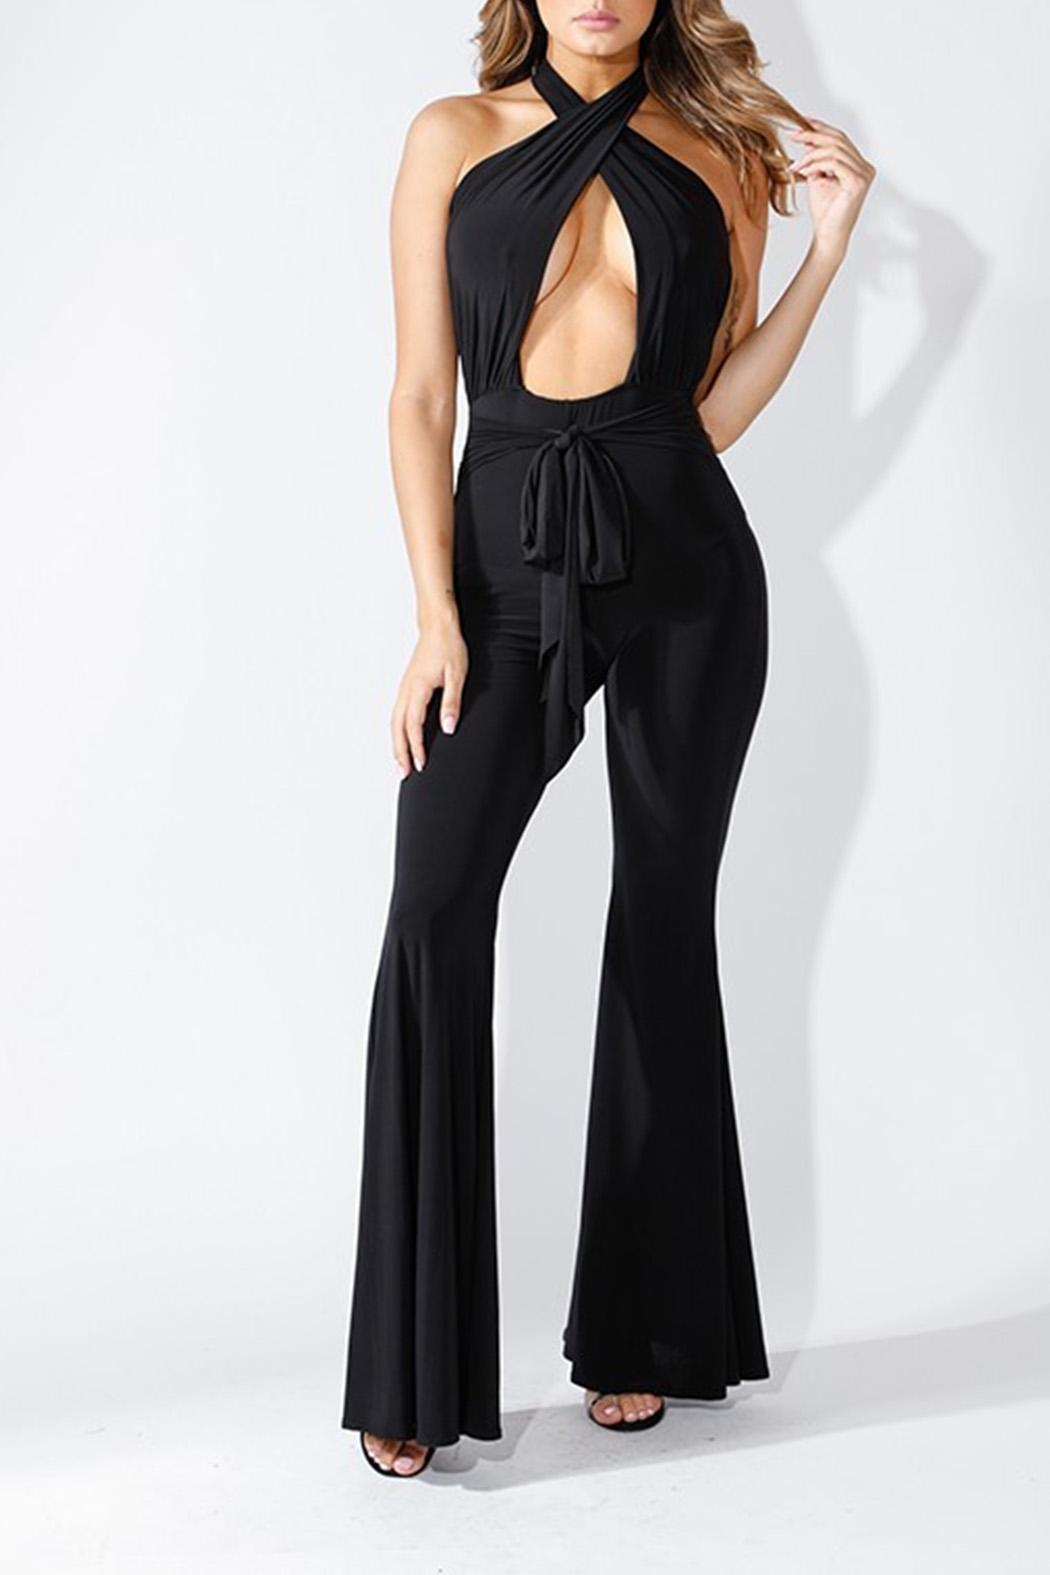 K too Crossed Front Jumpsuit - Main Image